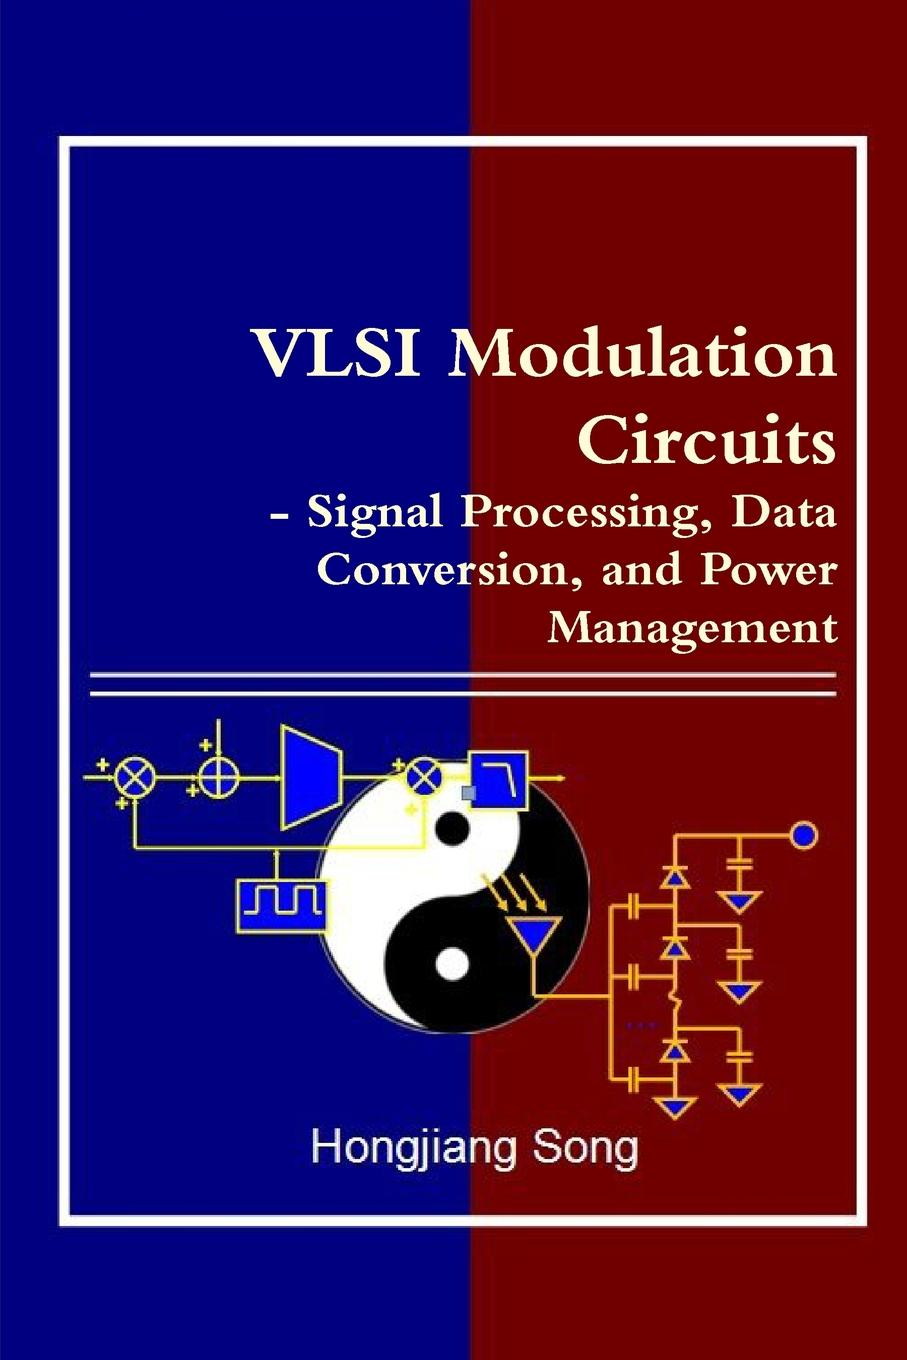 Hongjiang Song VLSI Modulation Circuits - Signal Processing, Data Conversion, and Power Management low power mixed mode circuit design of sar adc